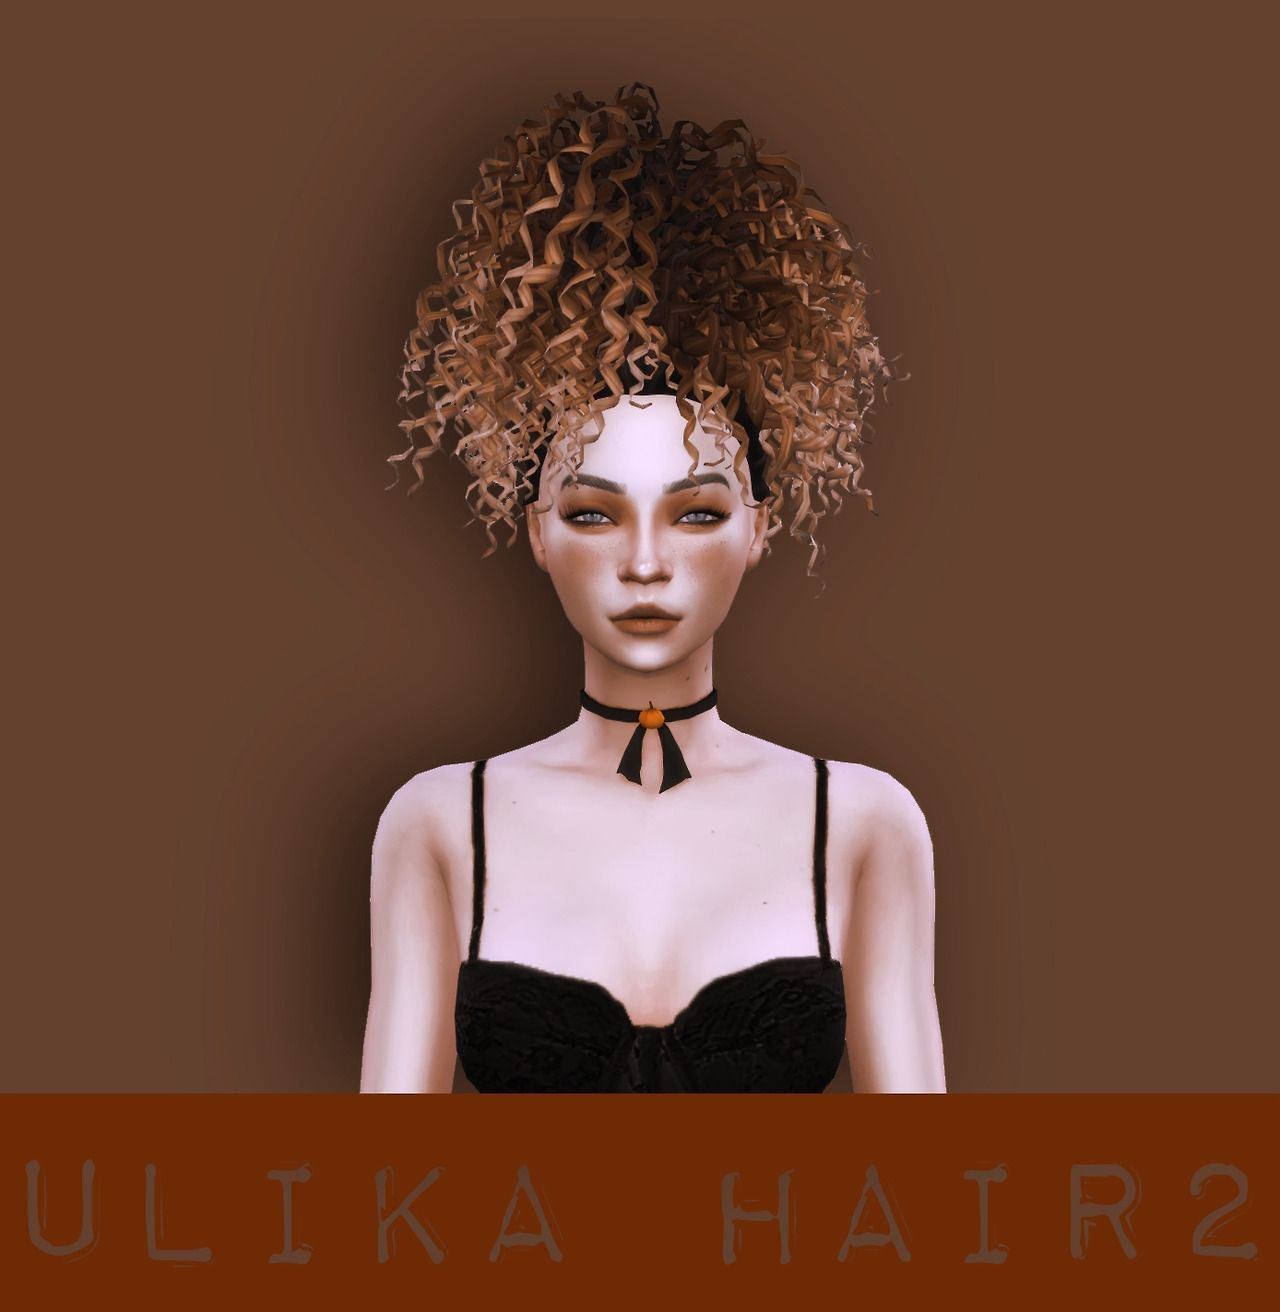 Lana Cc Finds Kumvip Ulika Convert Hair 2 New Mesh All Sims Hair Sims 4 Curly Hair Sims 4 Afro Hair Check out inspiring examples of sims4cc artwork on deviantart, and get inspired by our community of talented artists. lana cc finds kumvip ulika convert